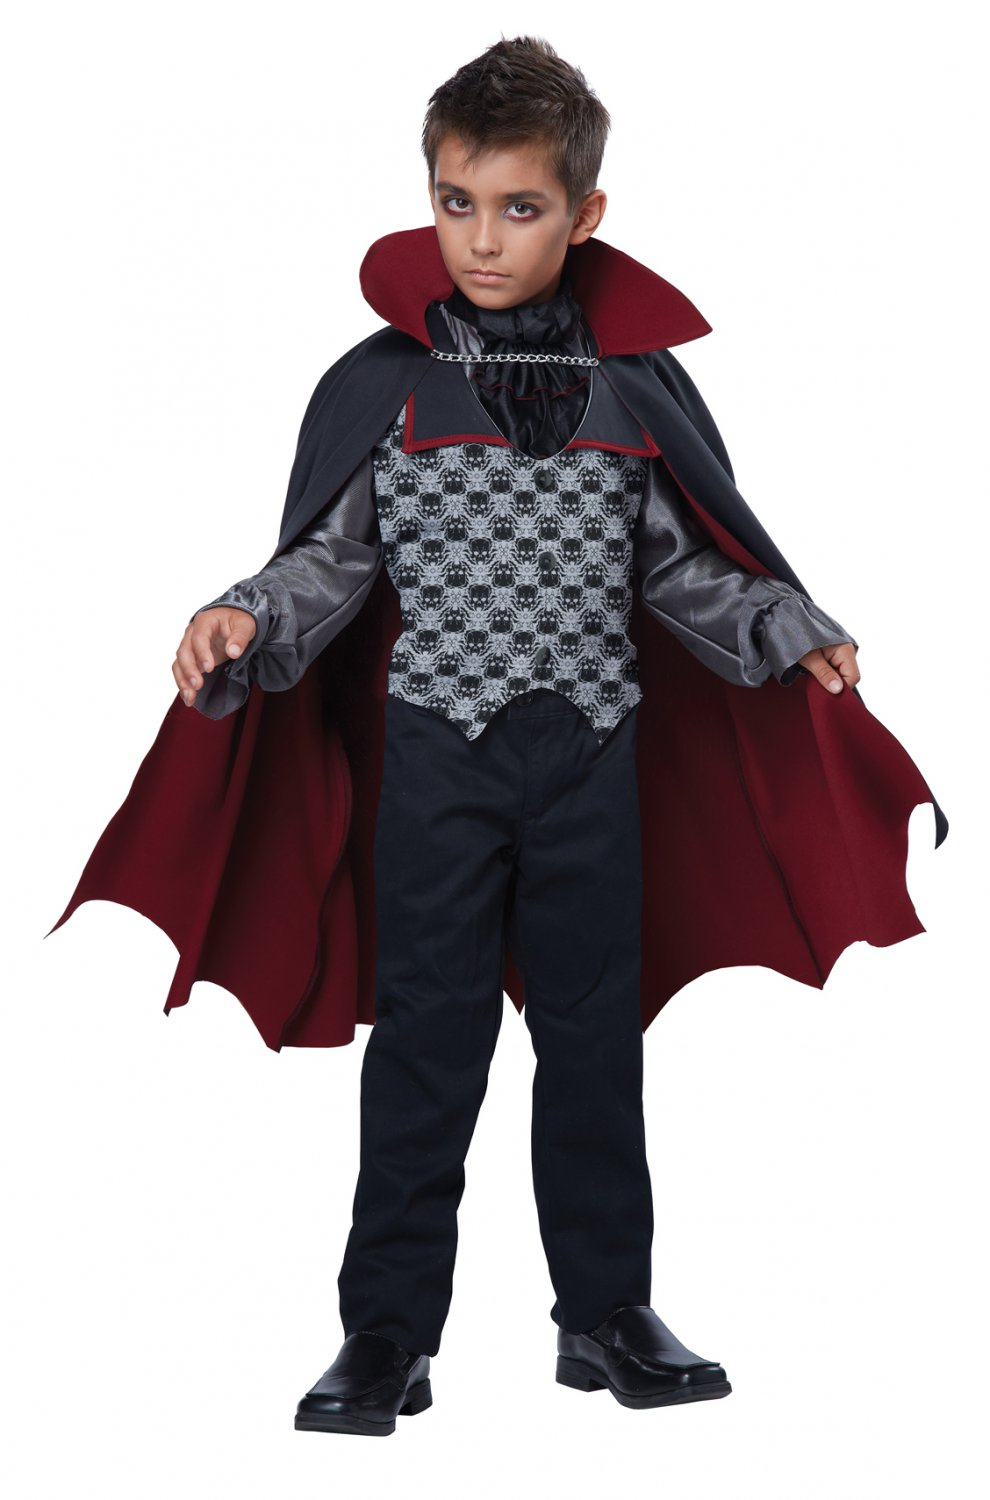 Dracula Count Bloodfiend Child Costume Size: Small #00501